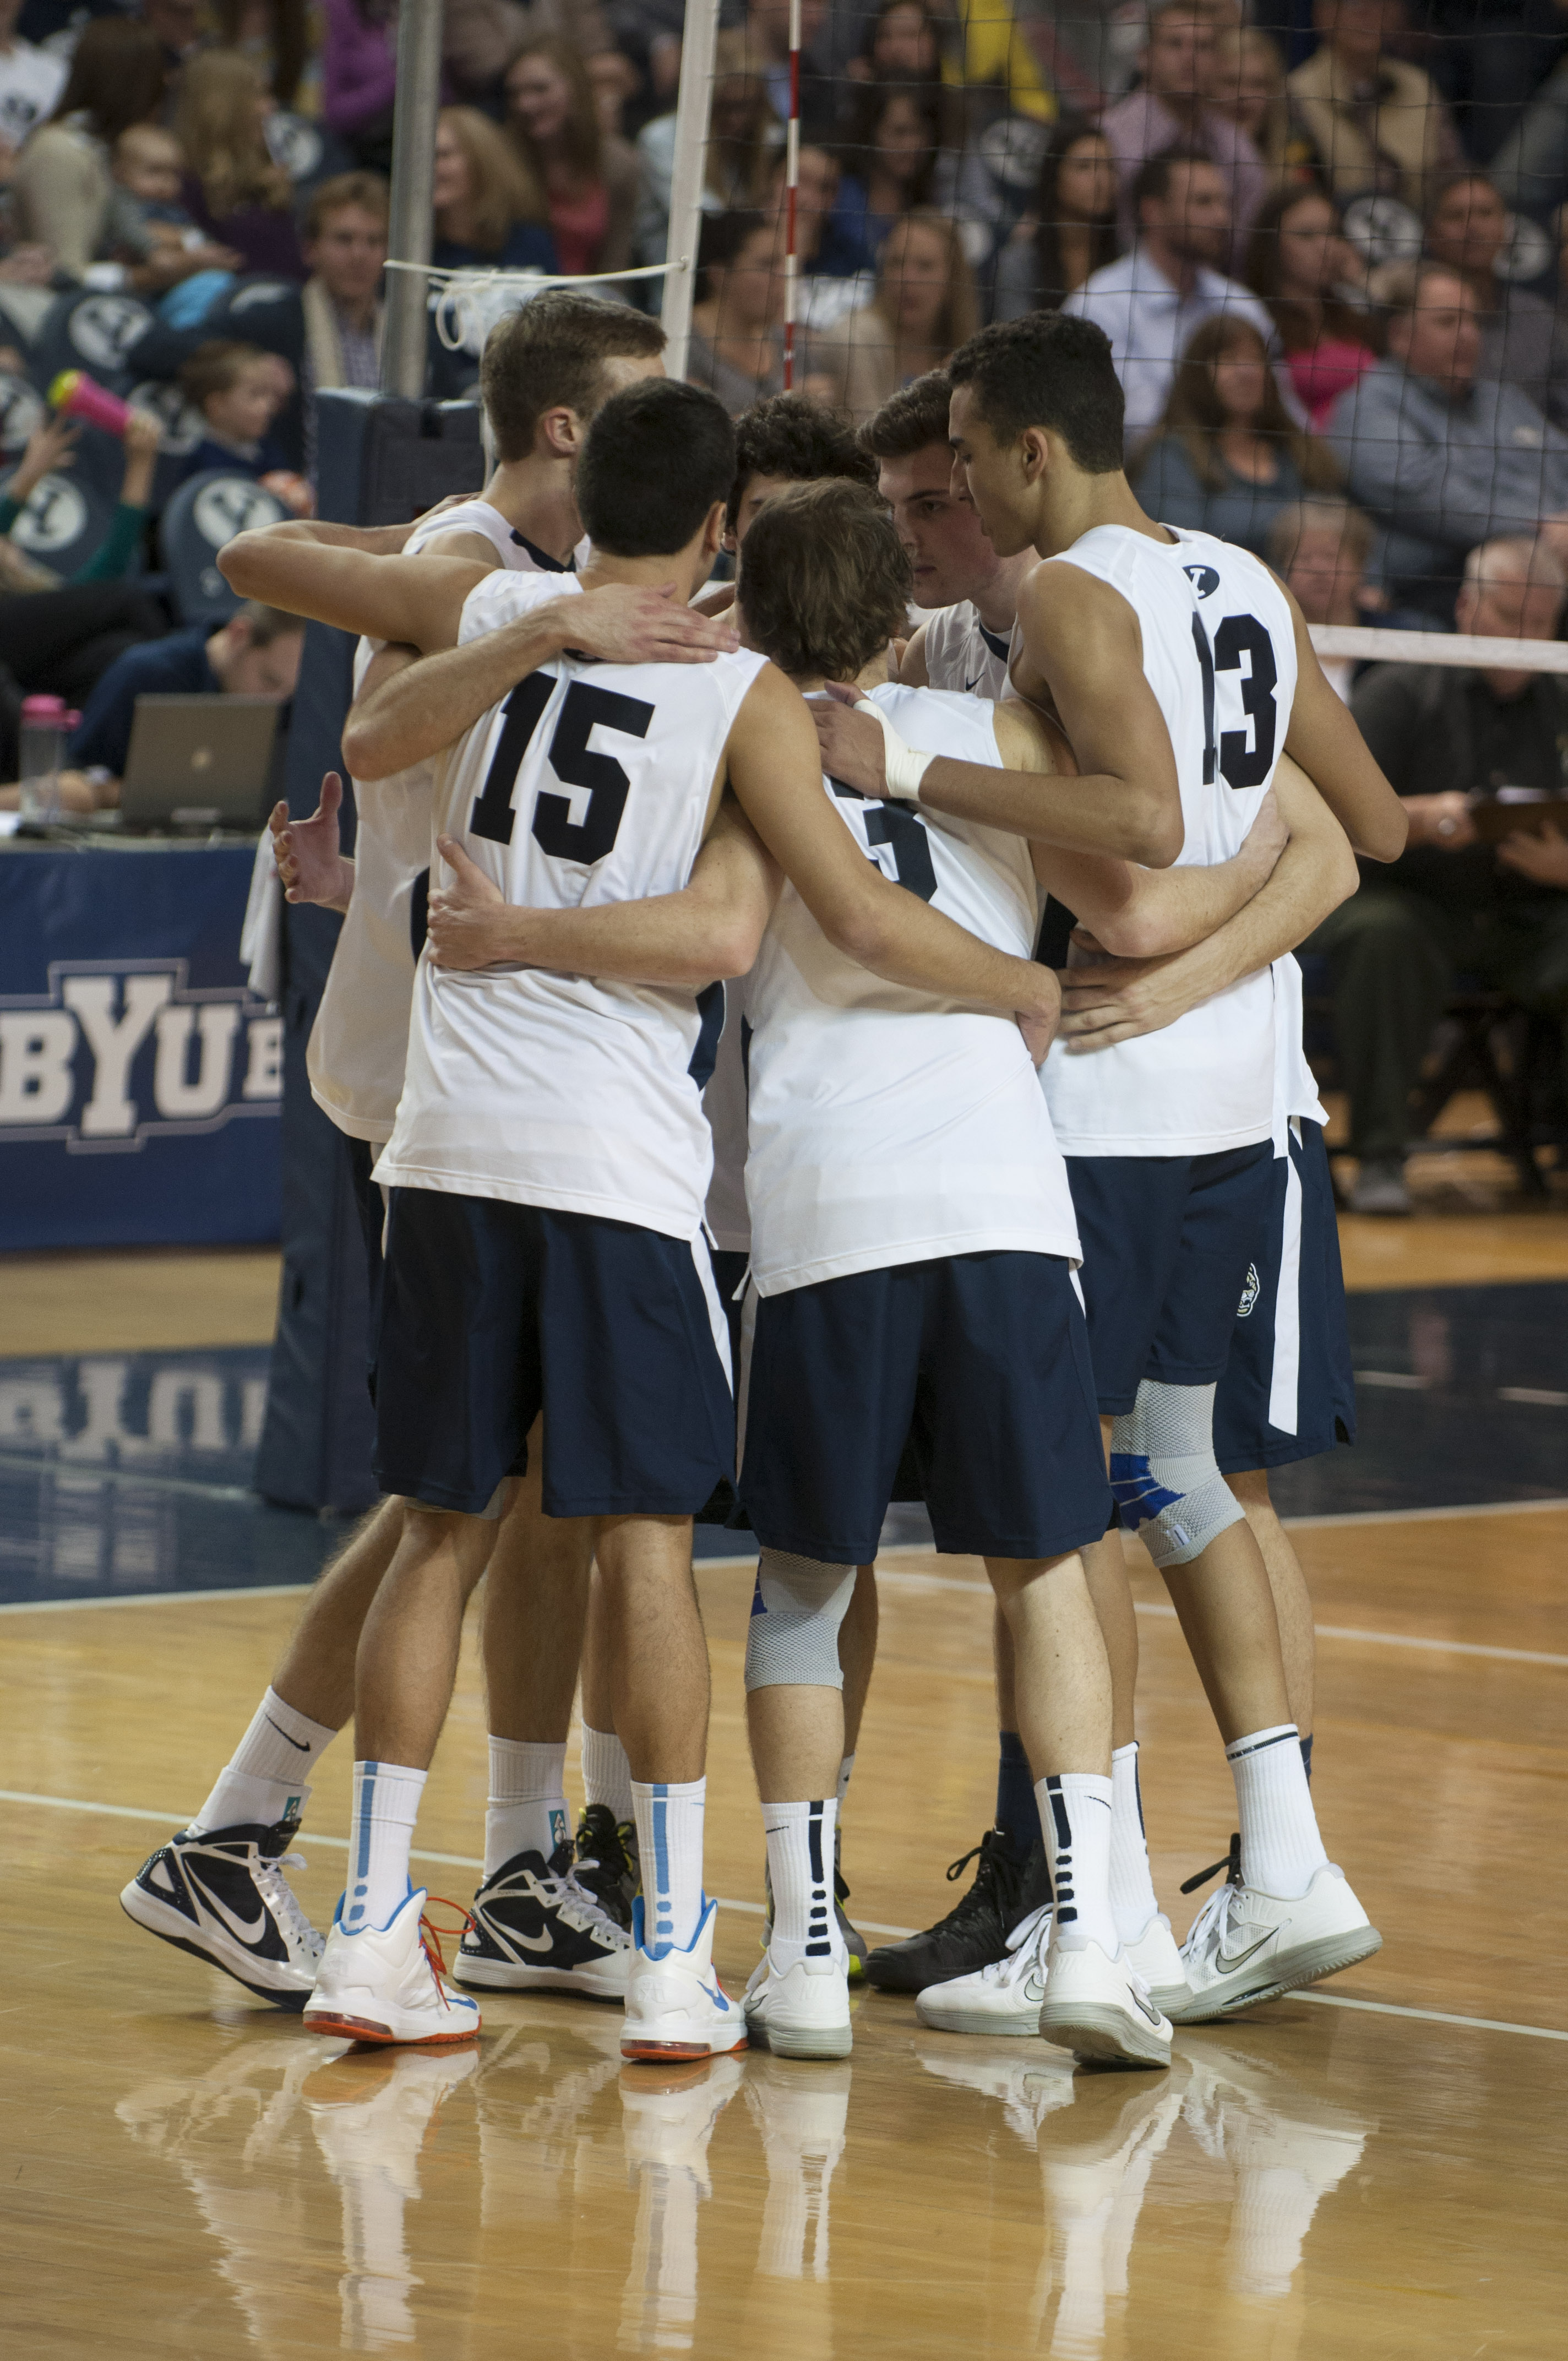 eek stanford mens volleyball - HD2848×4288